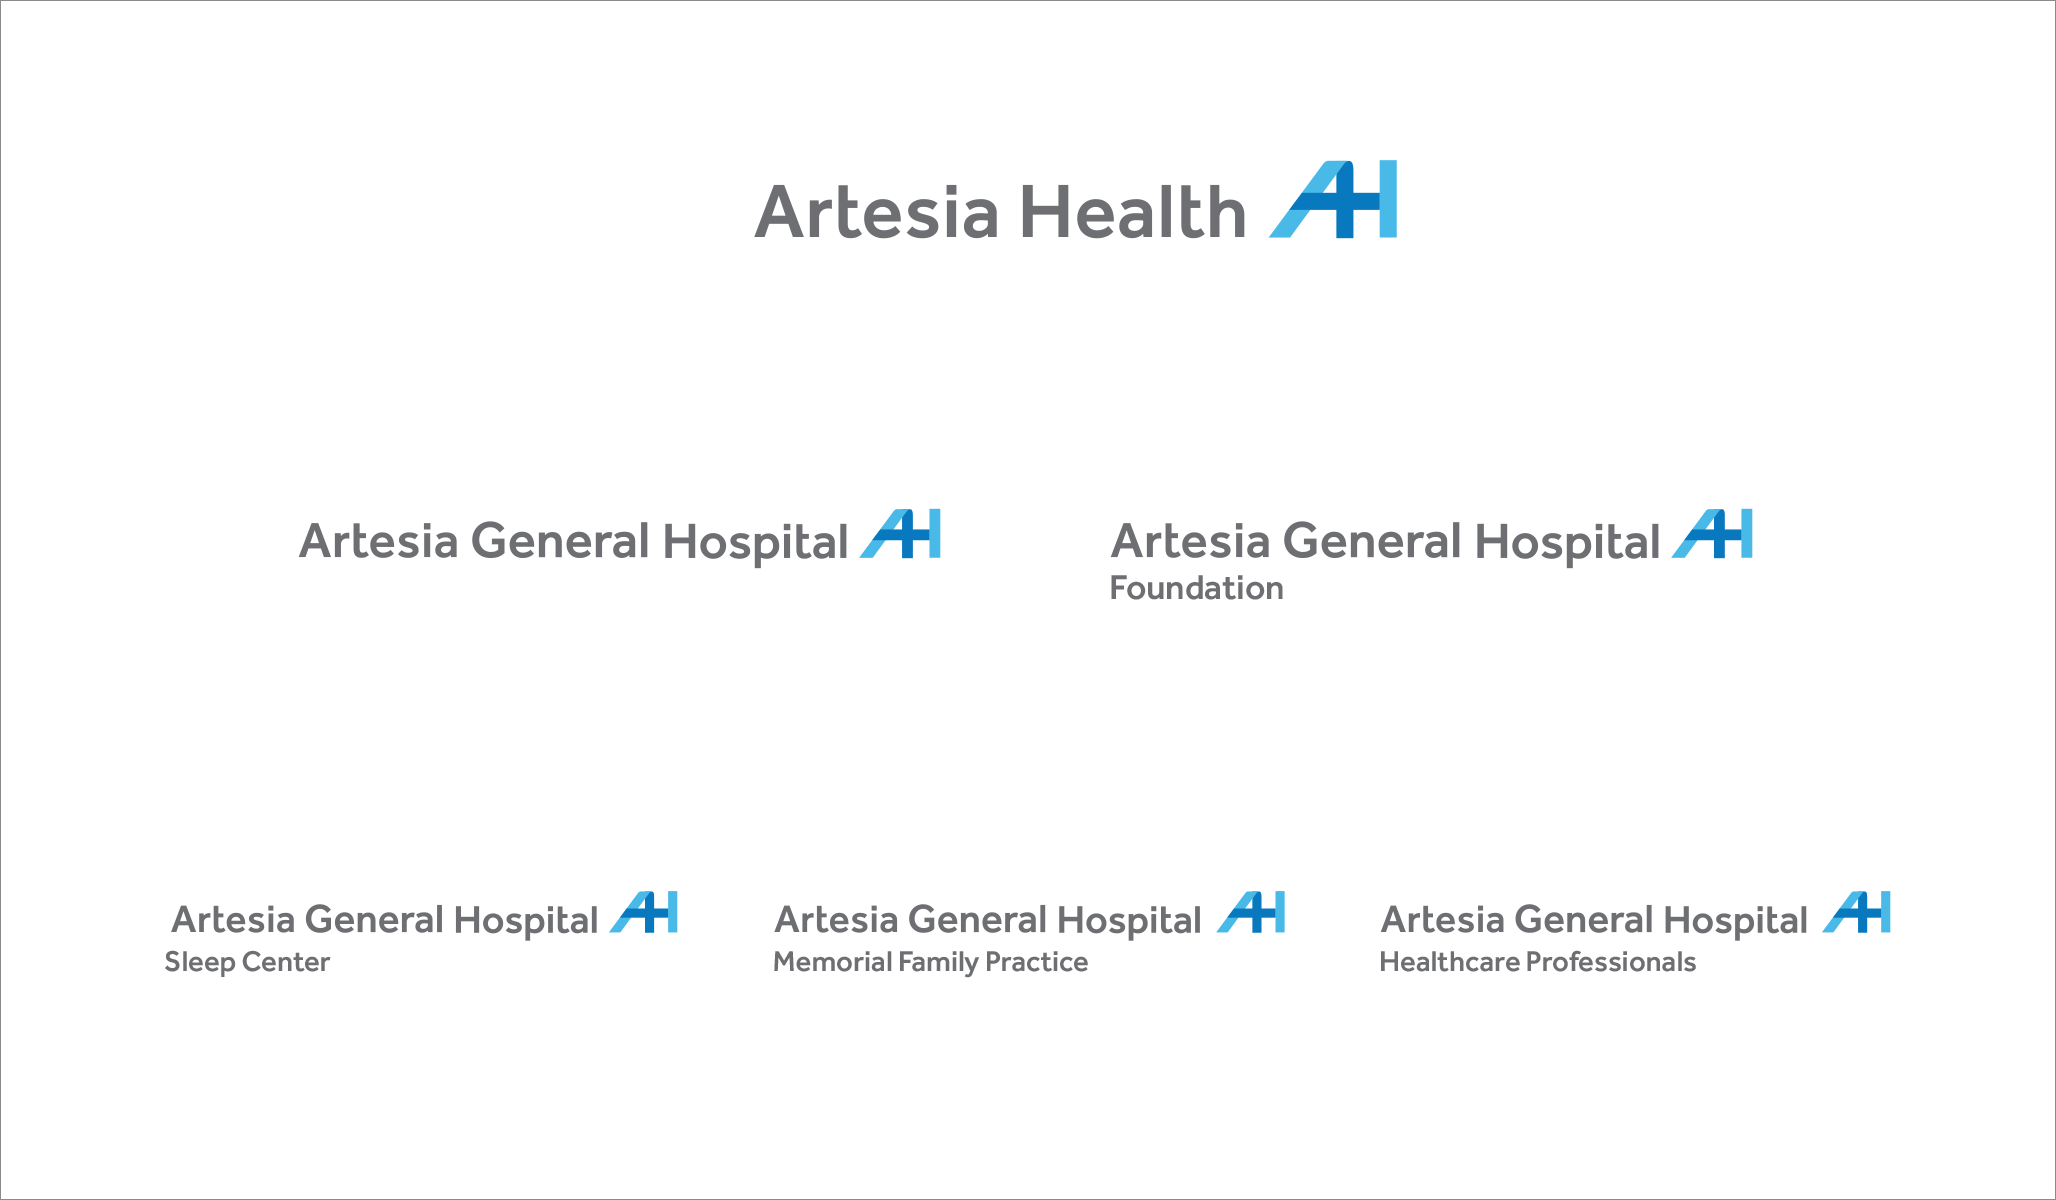 Artesia General Hospital new logo and sub-logos